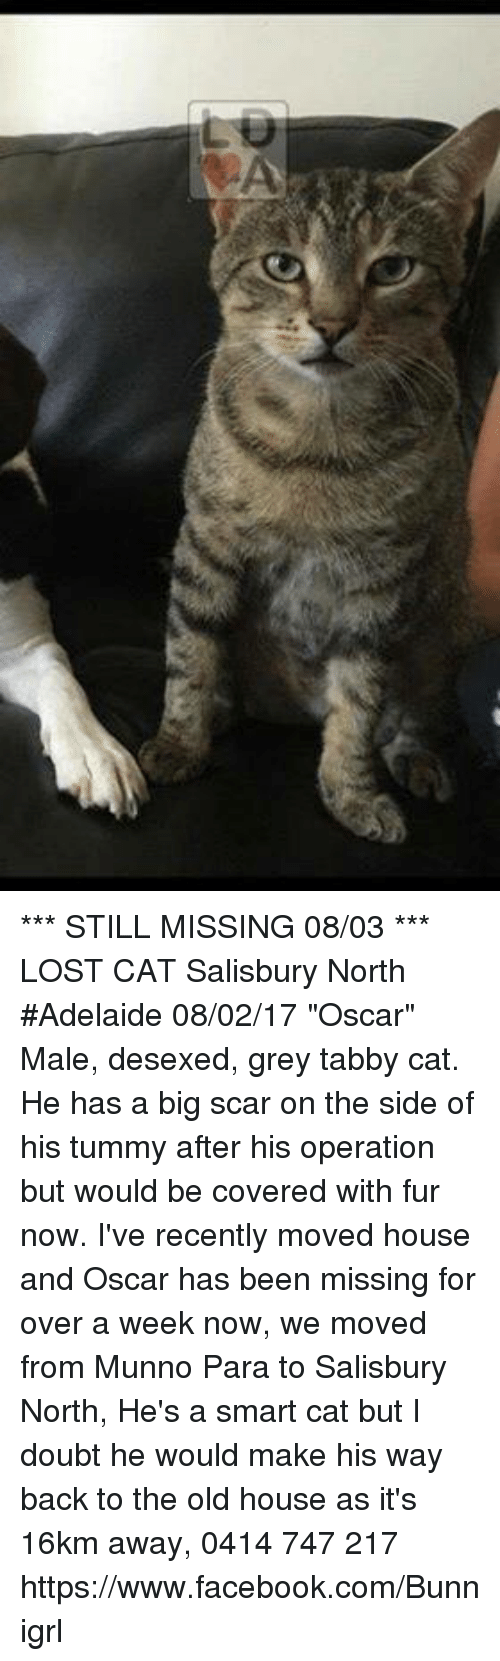 "Facebook, Memes, and Lost: *** STILL MISSING 08/03 ***  LOST CAT Salisbury North #Adelaide 08/02/17 ""Oscar"" Male, desexed, grey tabby cat. He has a big scar on the side of his tummy after his operation but would be covered with fur now. I've recently moved house and Oscar has been missing for over a week now, we moved from Munno Para to Salisbury North, He's a smart cat but I doubt he would make his way back to the old house as it's 16km away,  0414 747 217 https://www.facebook.com/Bunnigrl"